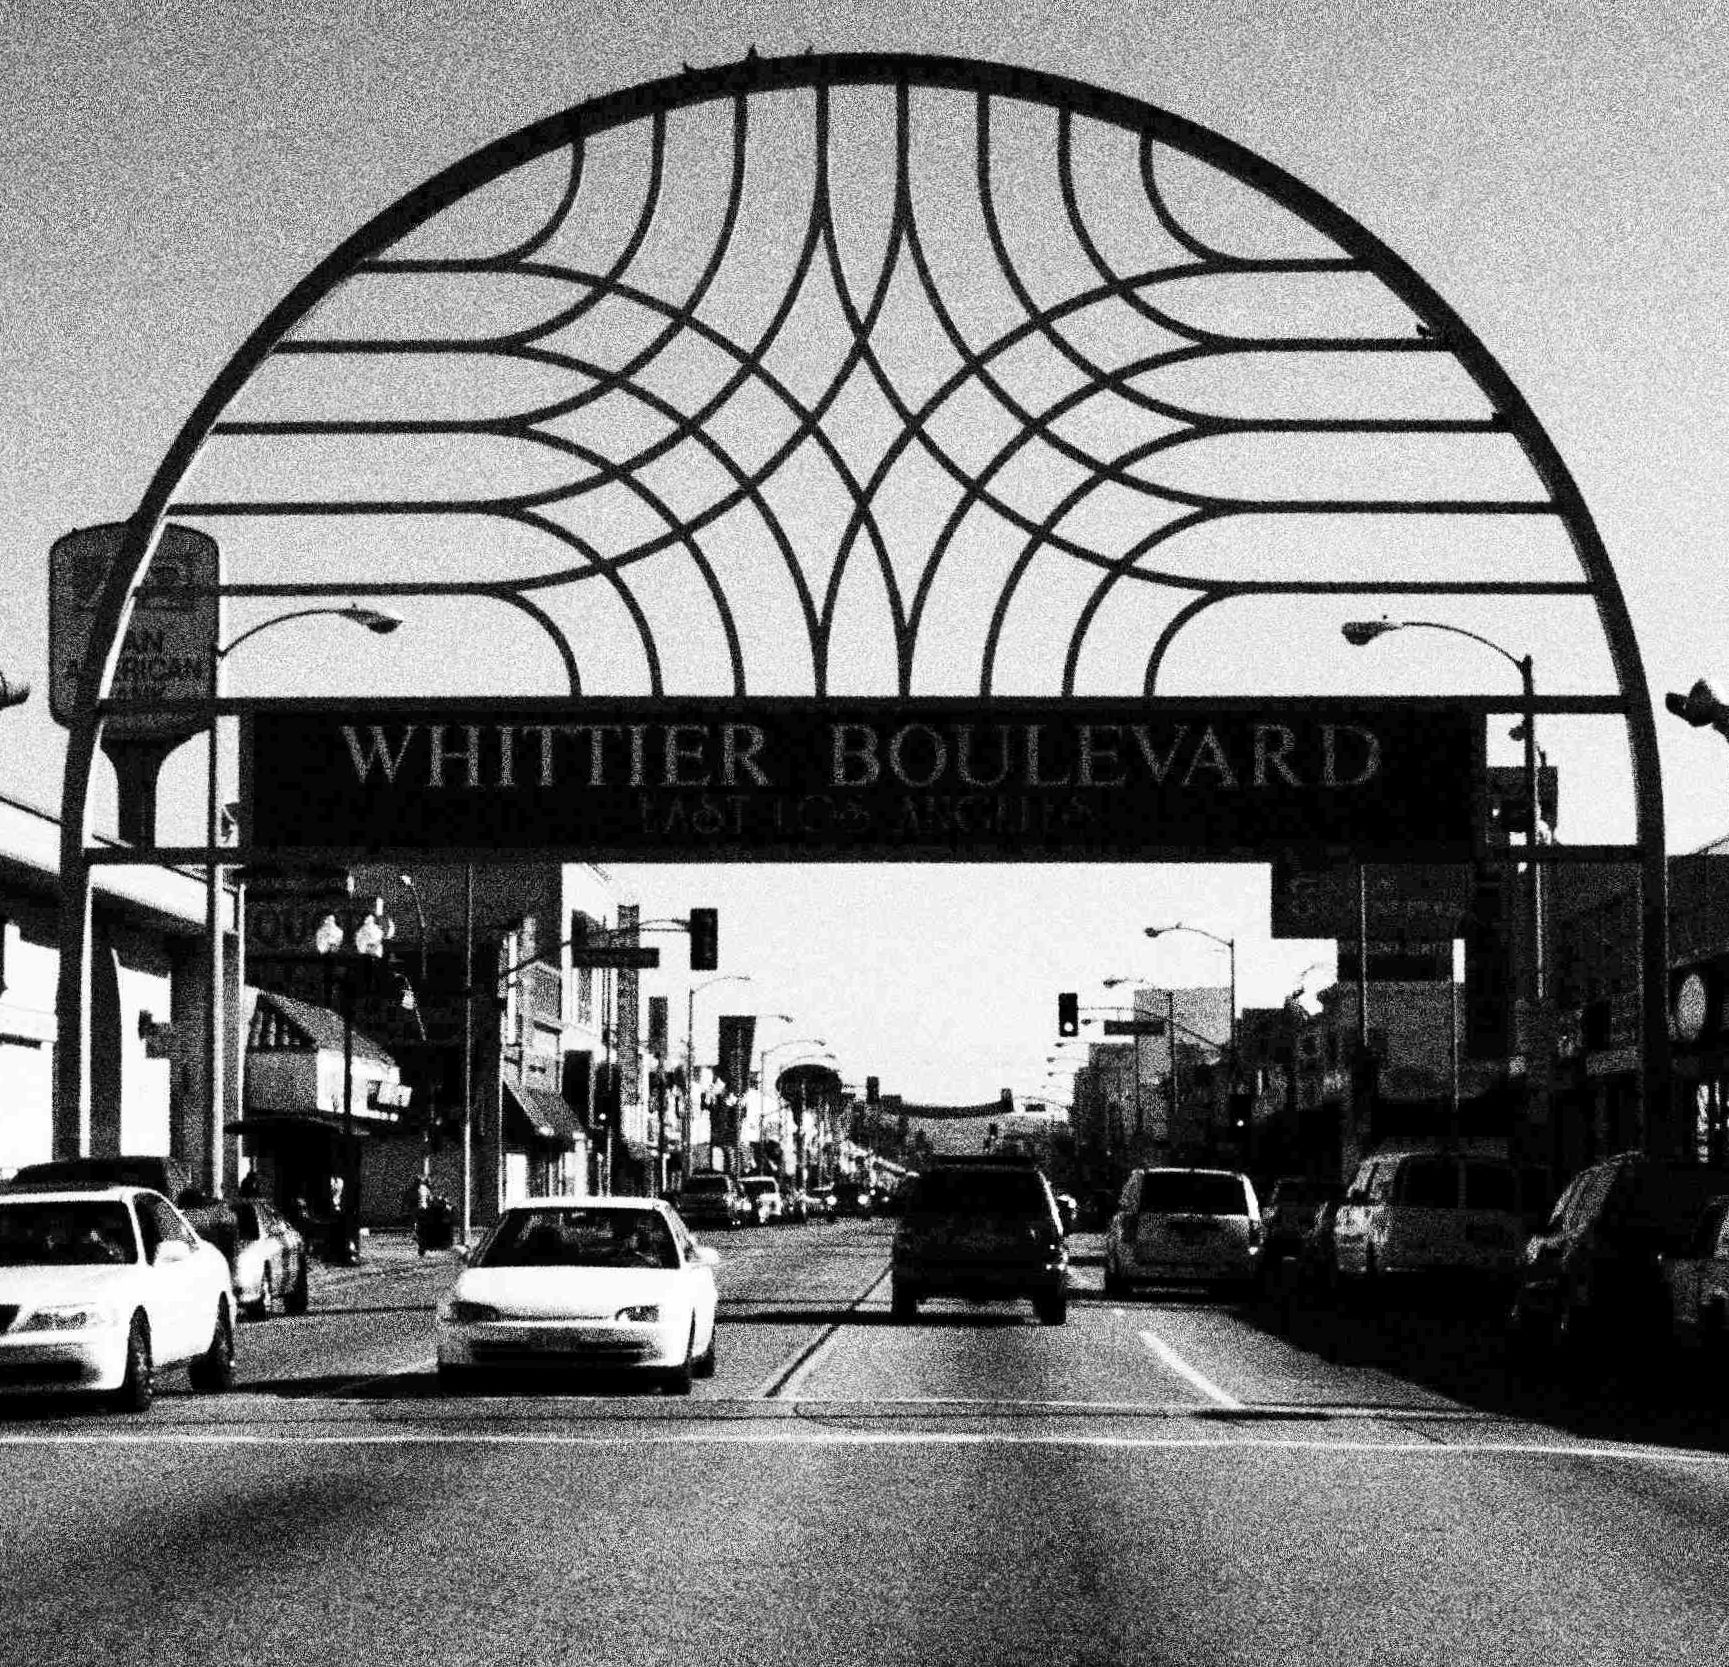 Arches on Whittier Blvd East los angeles, Whittier blvd